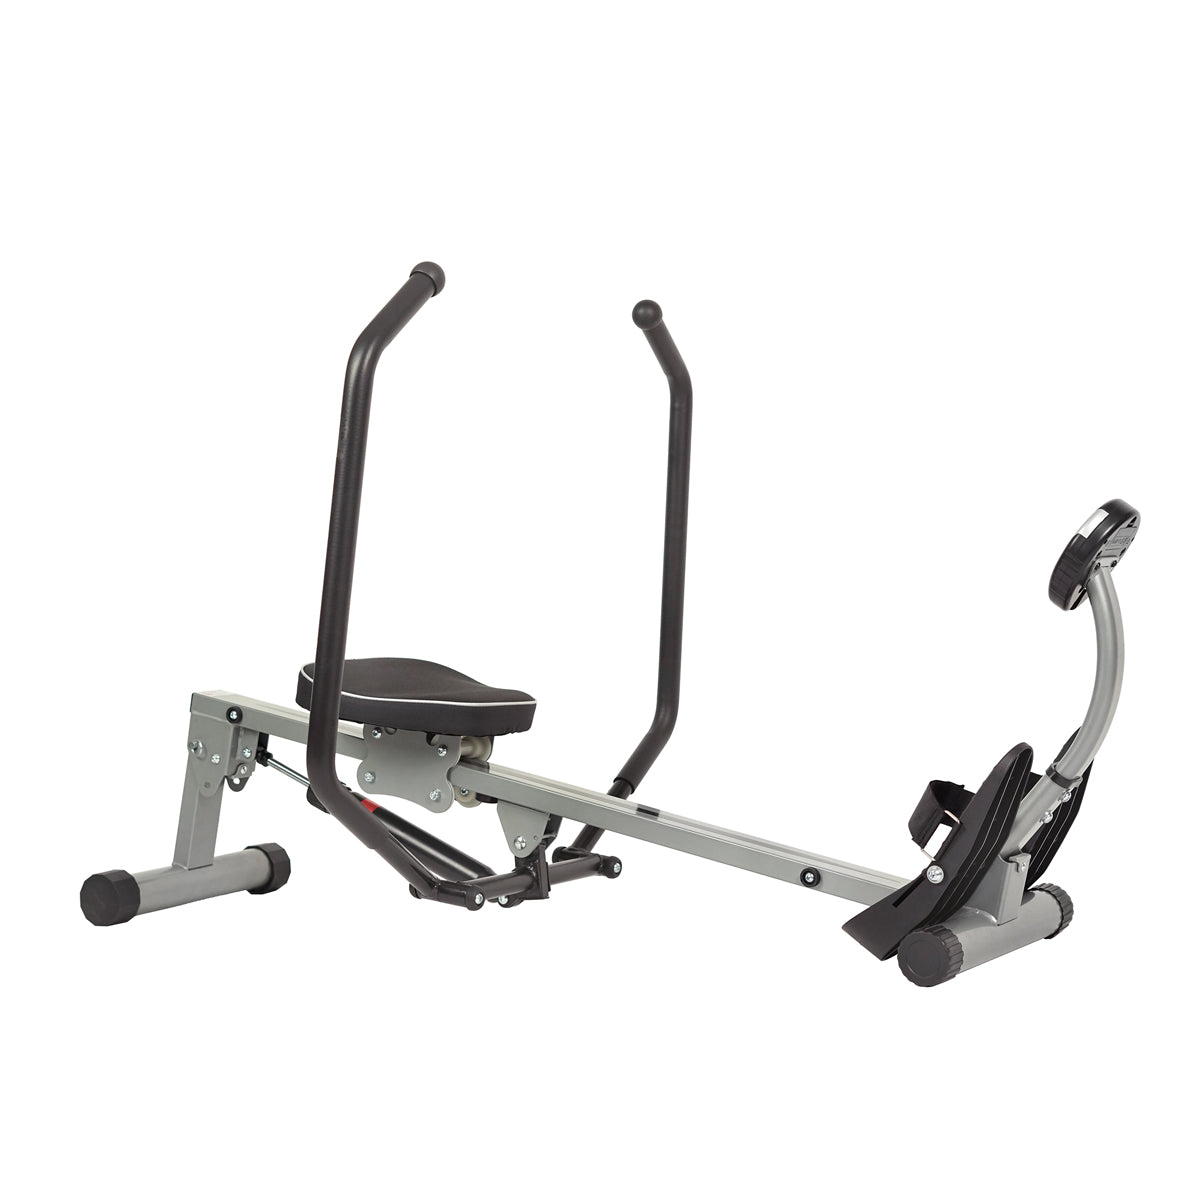 sunny-health-fitness-rowers-rowing-machine-full-motion-arms-SF-RW1410-heavy-duty